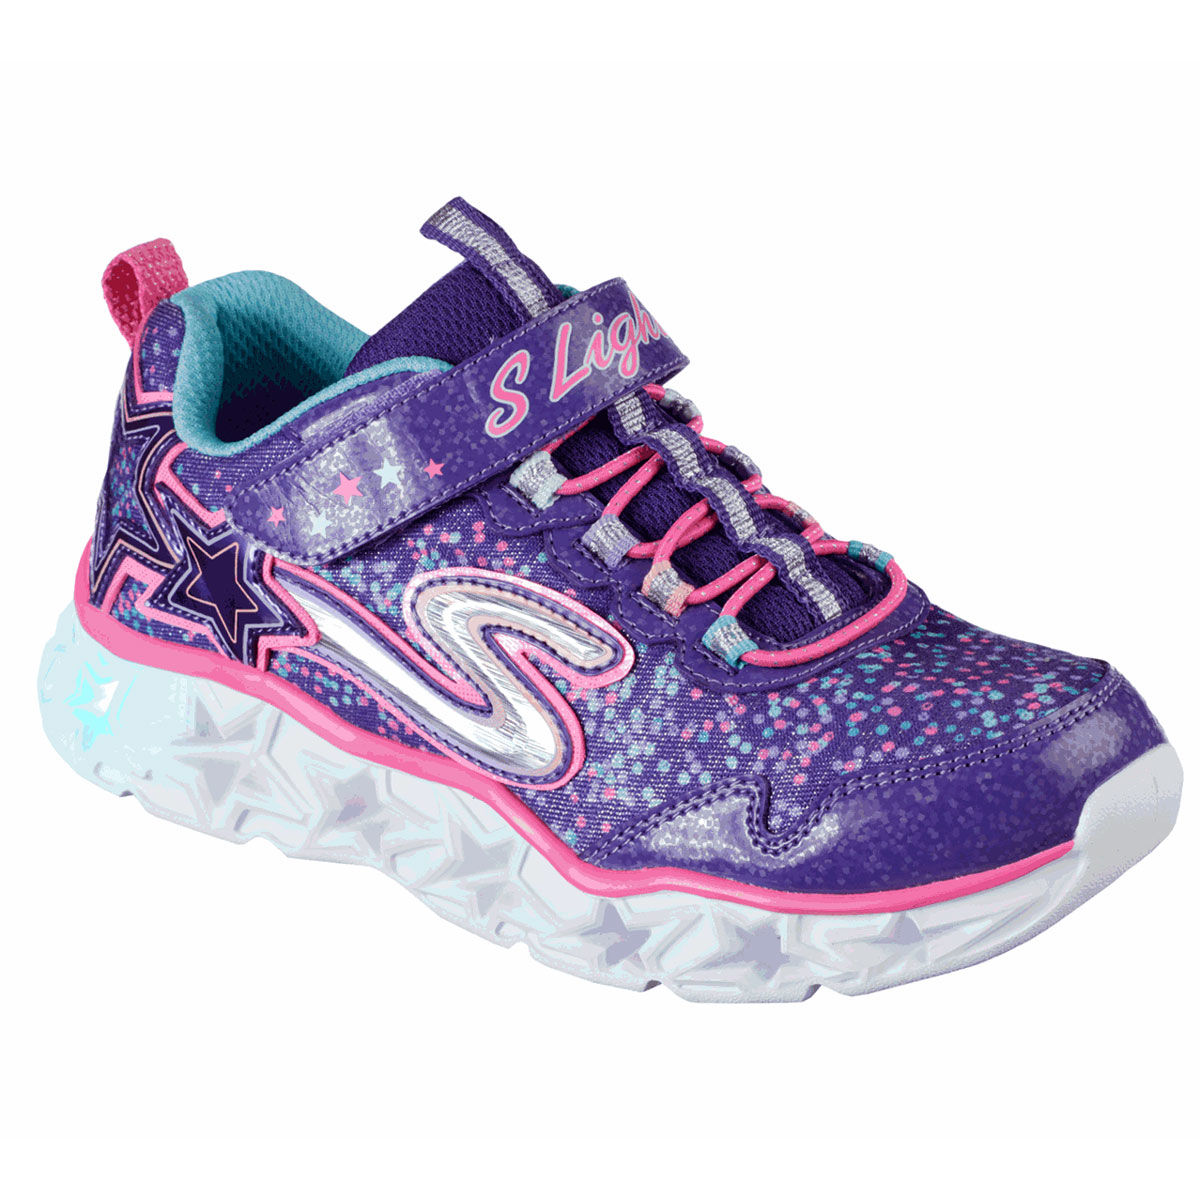 Skechers Galaxy Lights Preschool Girls Casual Shoe